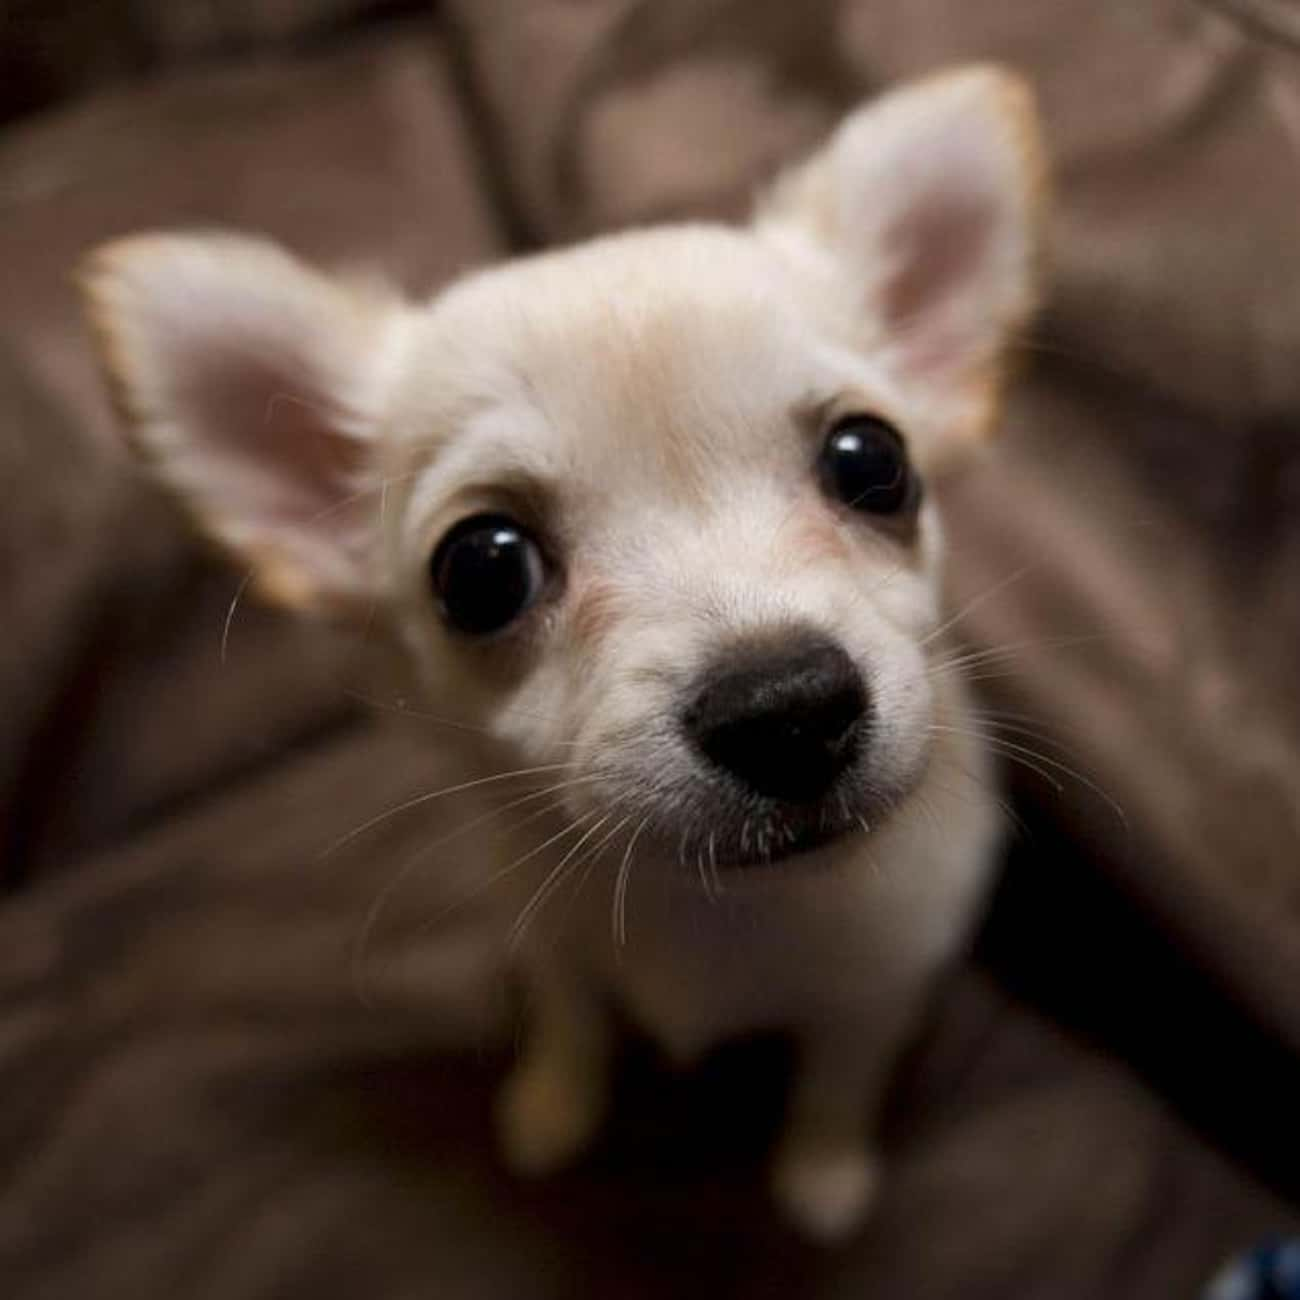 Taurus - Chihuahua is listed (or ranked) 2 on the list Which Dog Breed Should You Get, Based On Your Zodiac Sign?